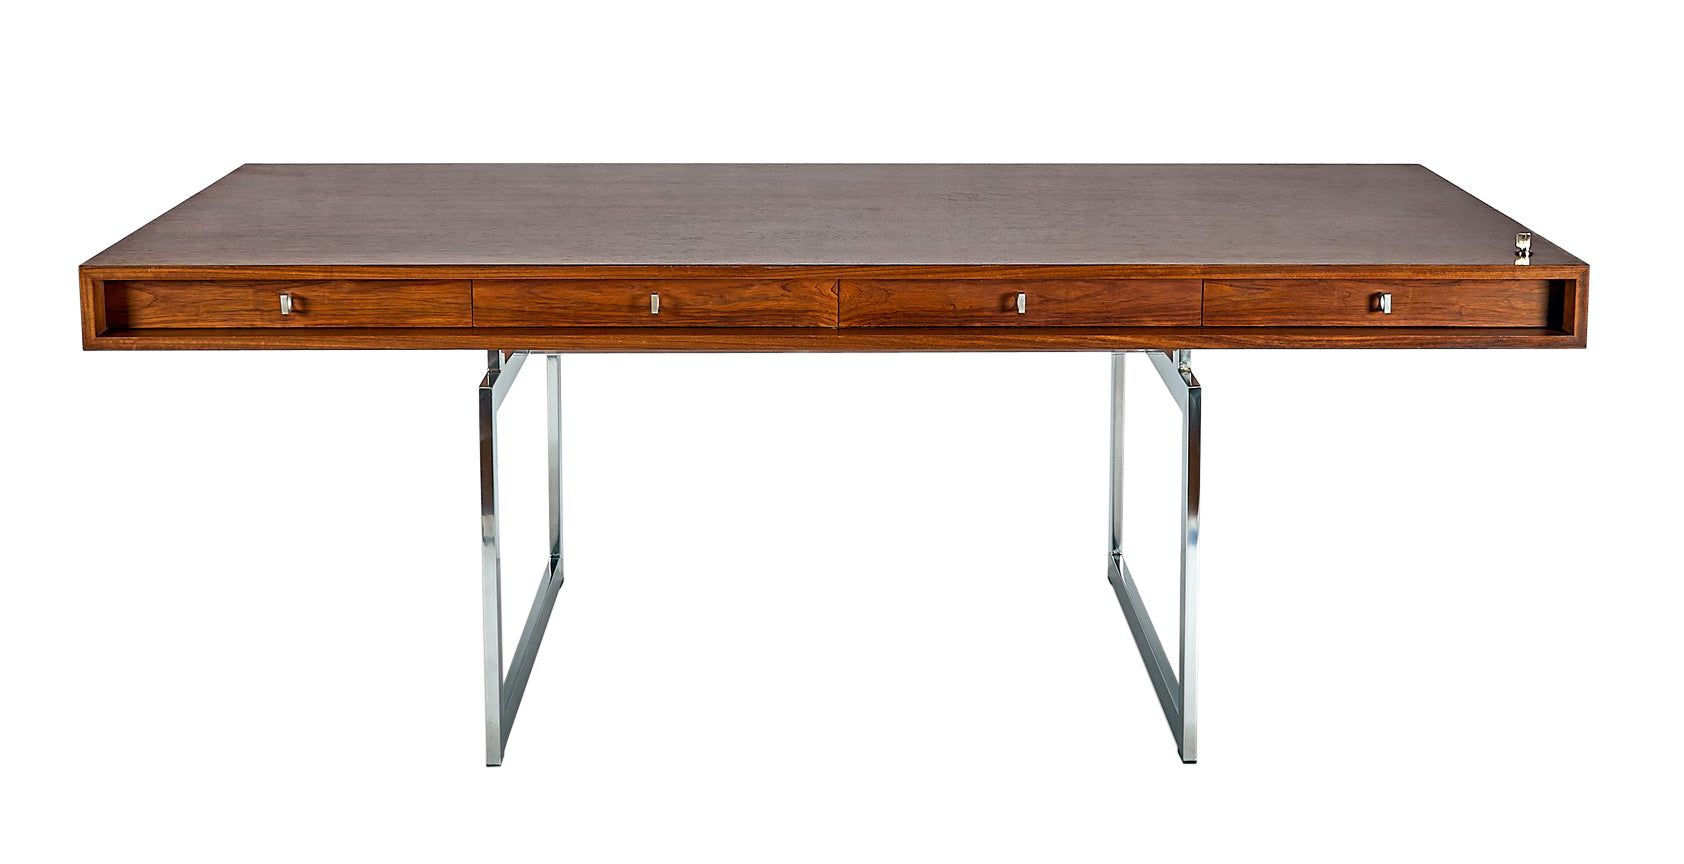 Early Bodil Kjaer Desk in Rosewood with Four Drawers, circa 1960's - The Space Detroit